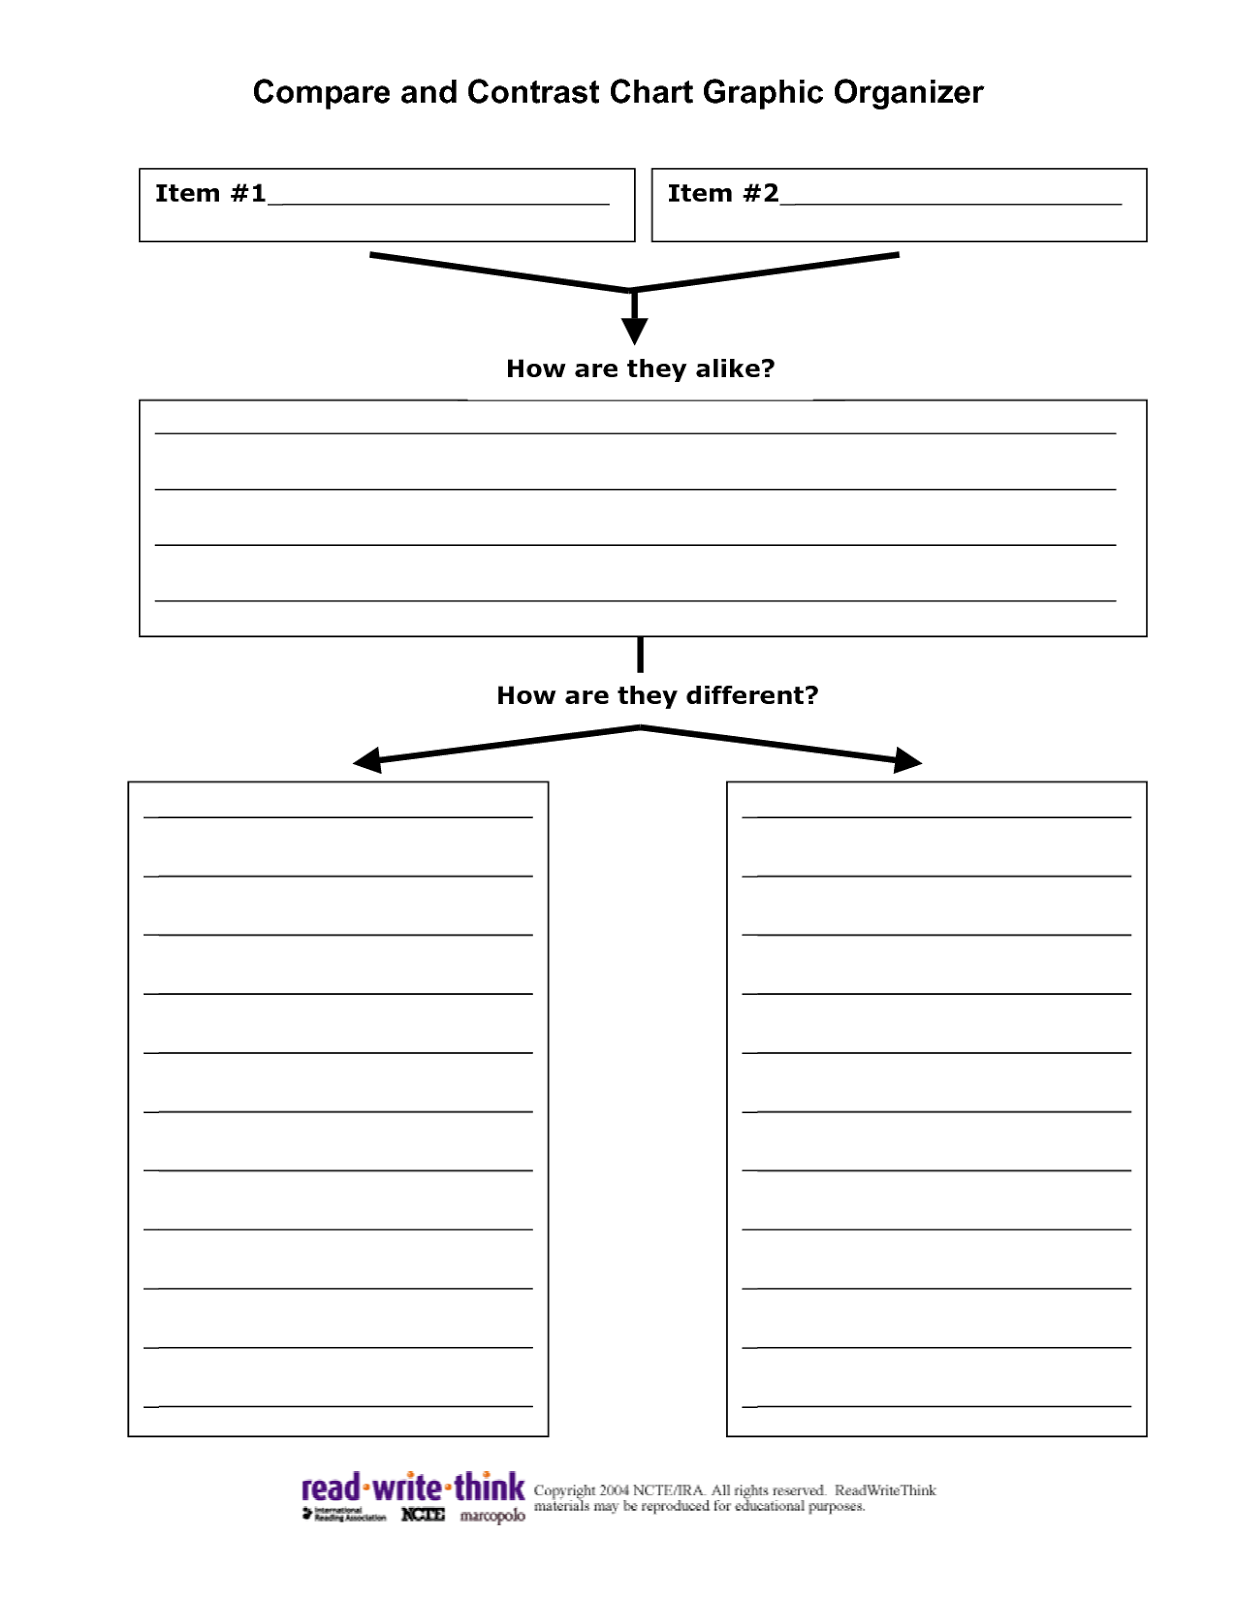 the uncommon corps in praise of graphic organizers essay writing tips writing prompts  [ 1236 x 1600 Pixel ]